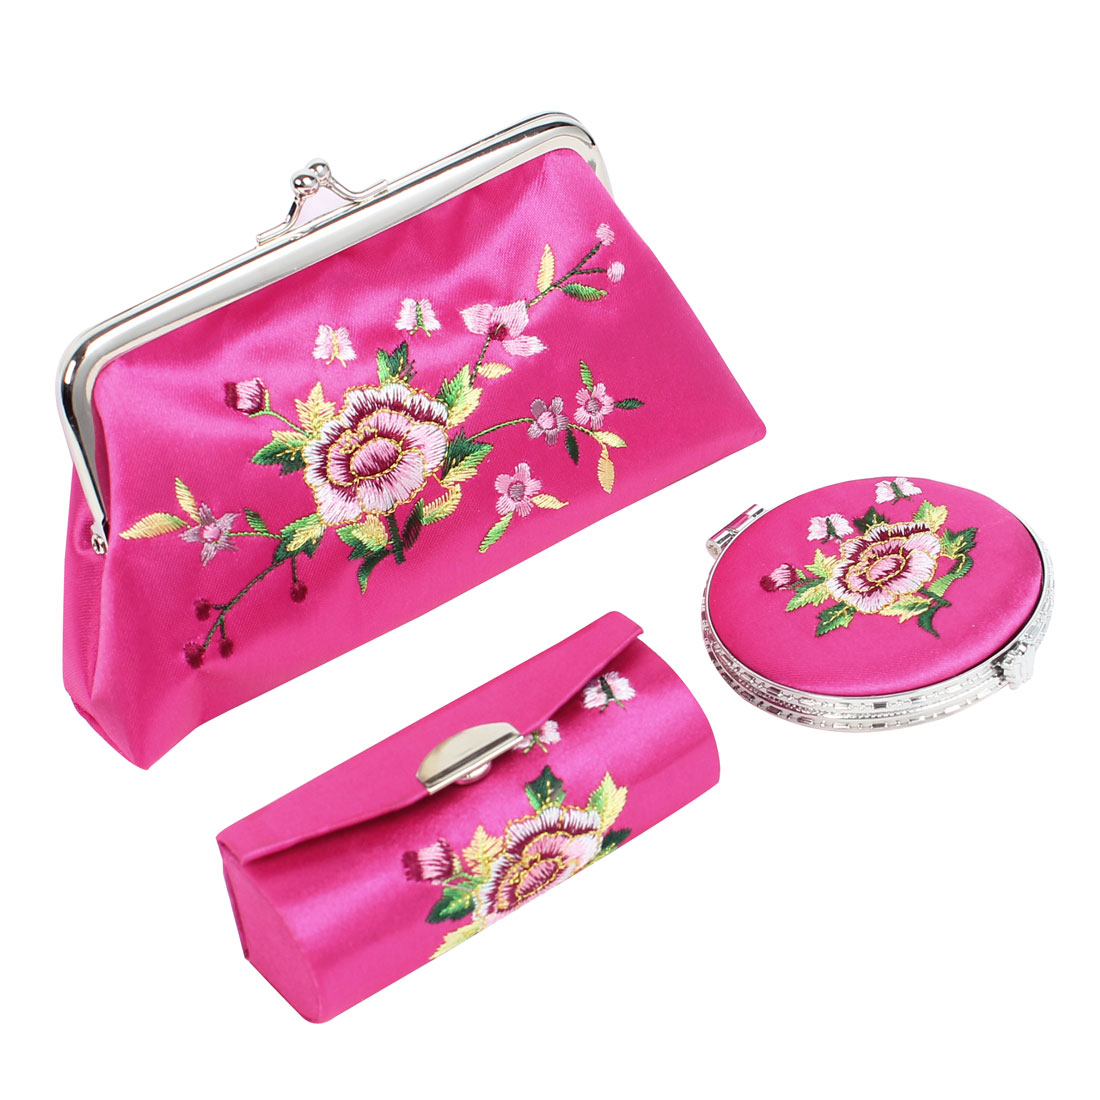 Flower Embroidered Kiss Lock Clasp Wallet Mirror Lipstick Holder Case Fuchsia 3 in 1